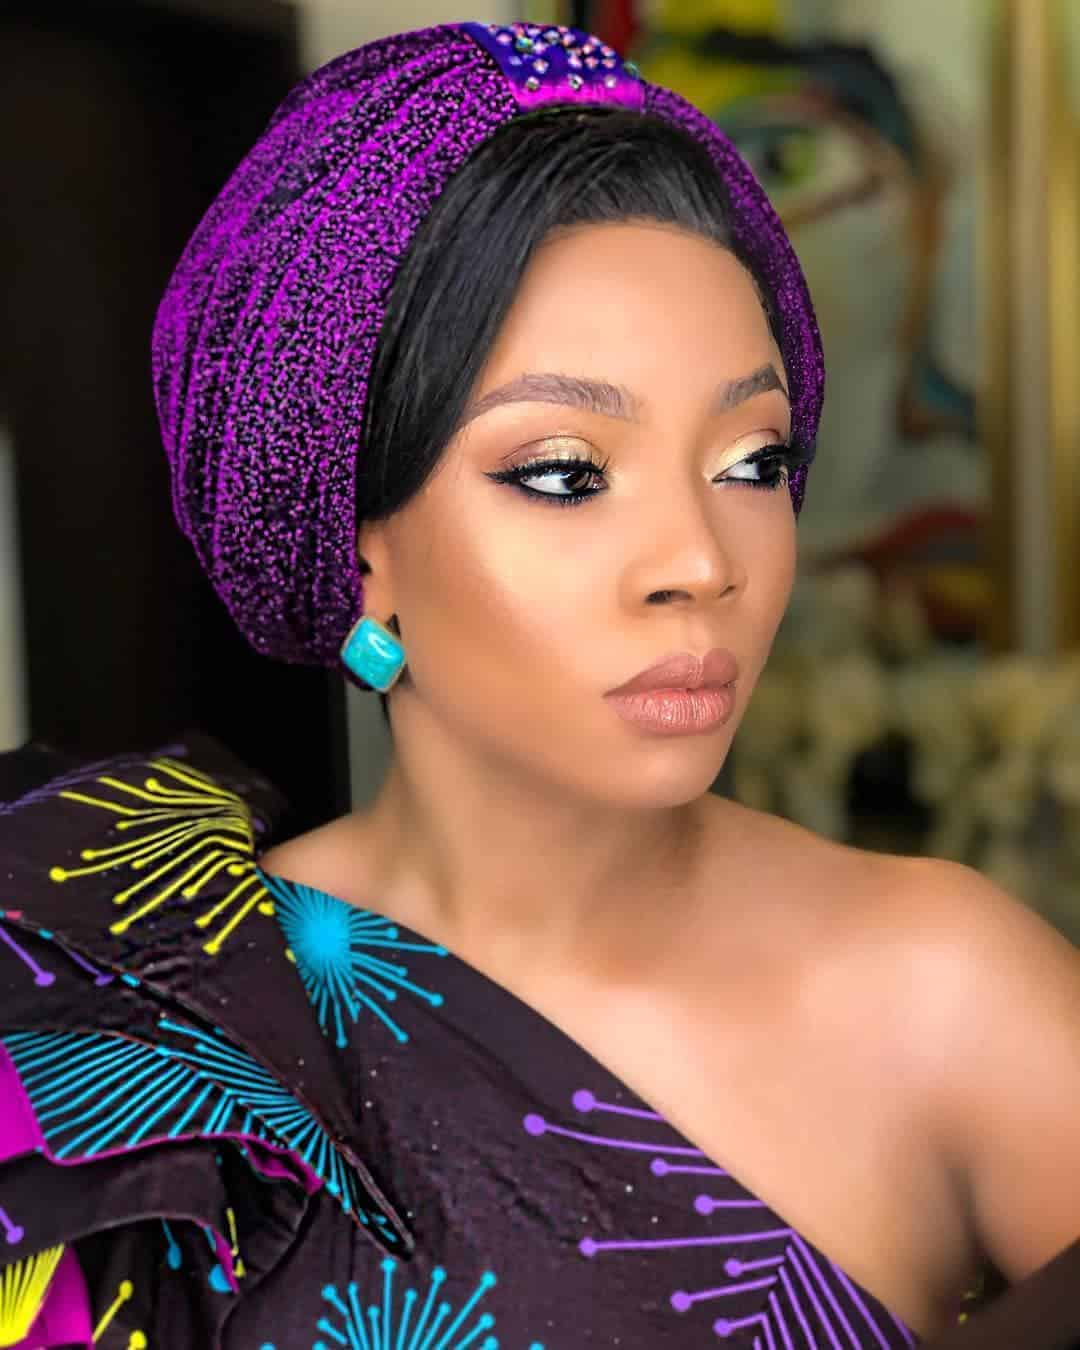 Toke Makinwa reveals how there will be less insults and more peace in a relationship